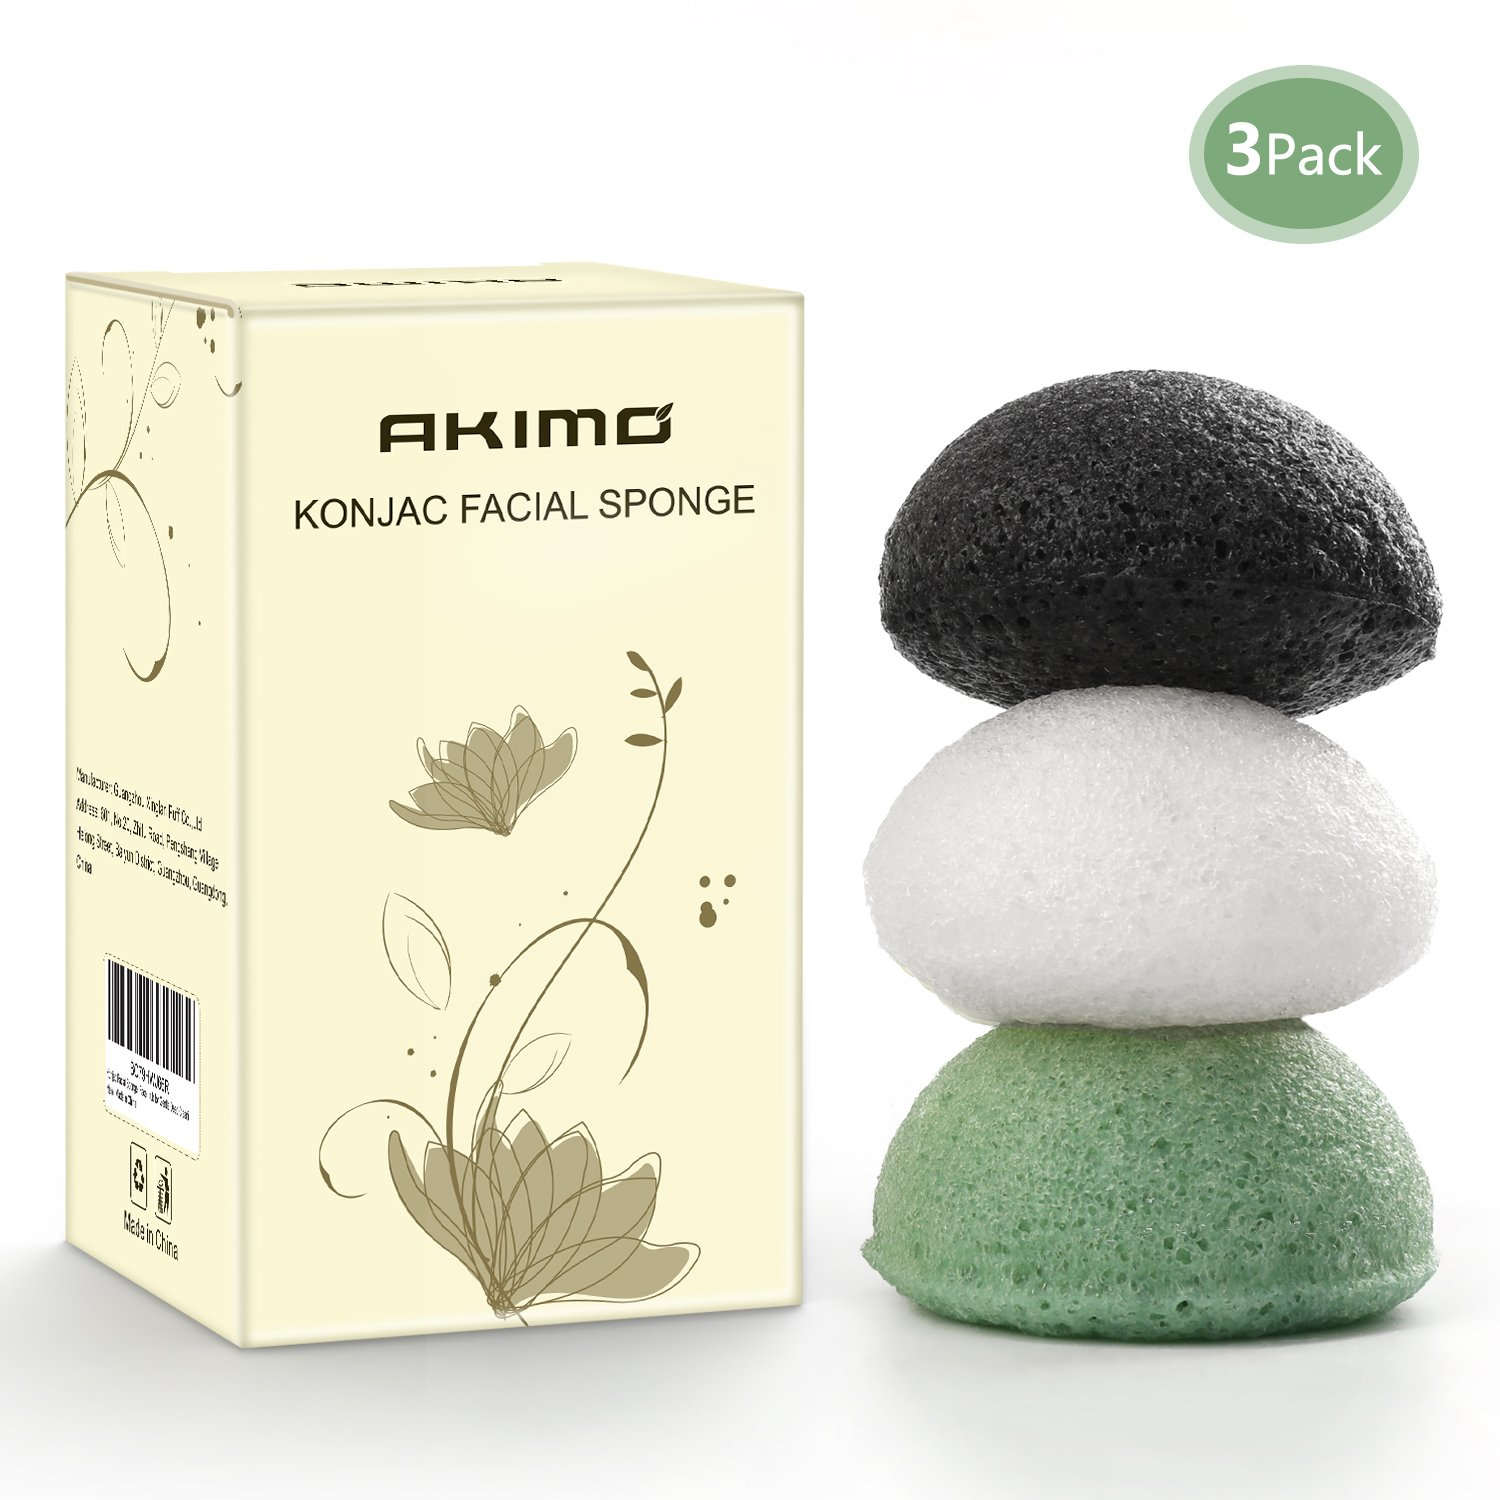 Akimo Konjac Facial Sponge - 3 Pack Natural Activated (Milk, Green Tea and Bamboo Charcoal) Face Exfoliating Scrubber, Gently Deep Pore Cleansing and Body Massage for Men Women